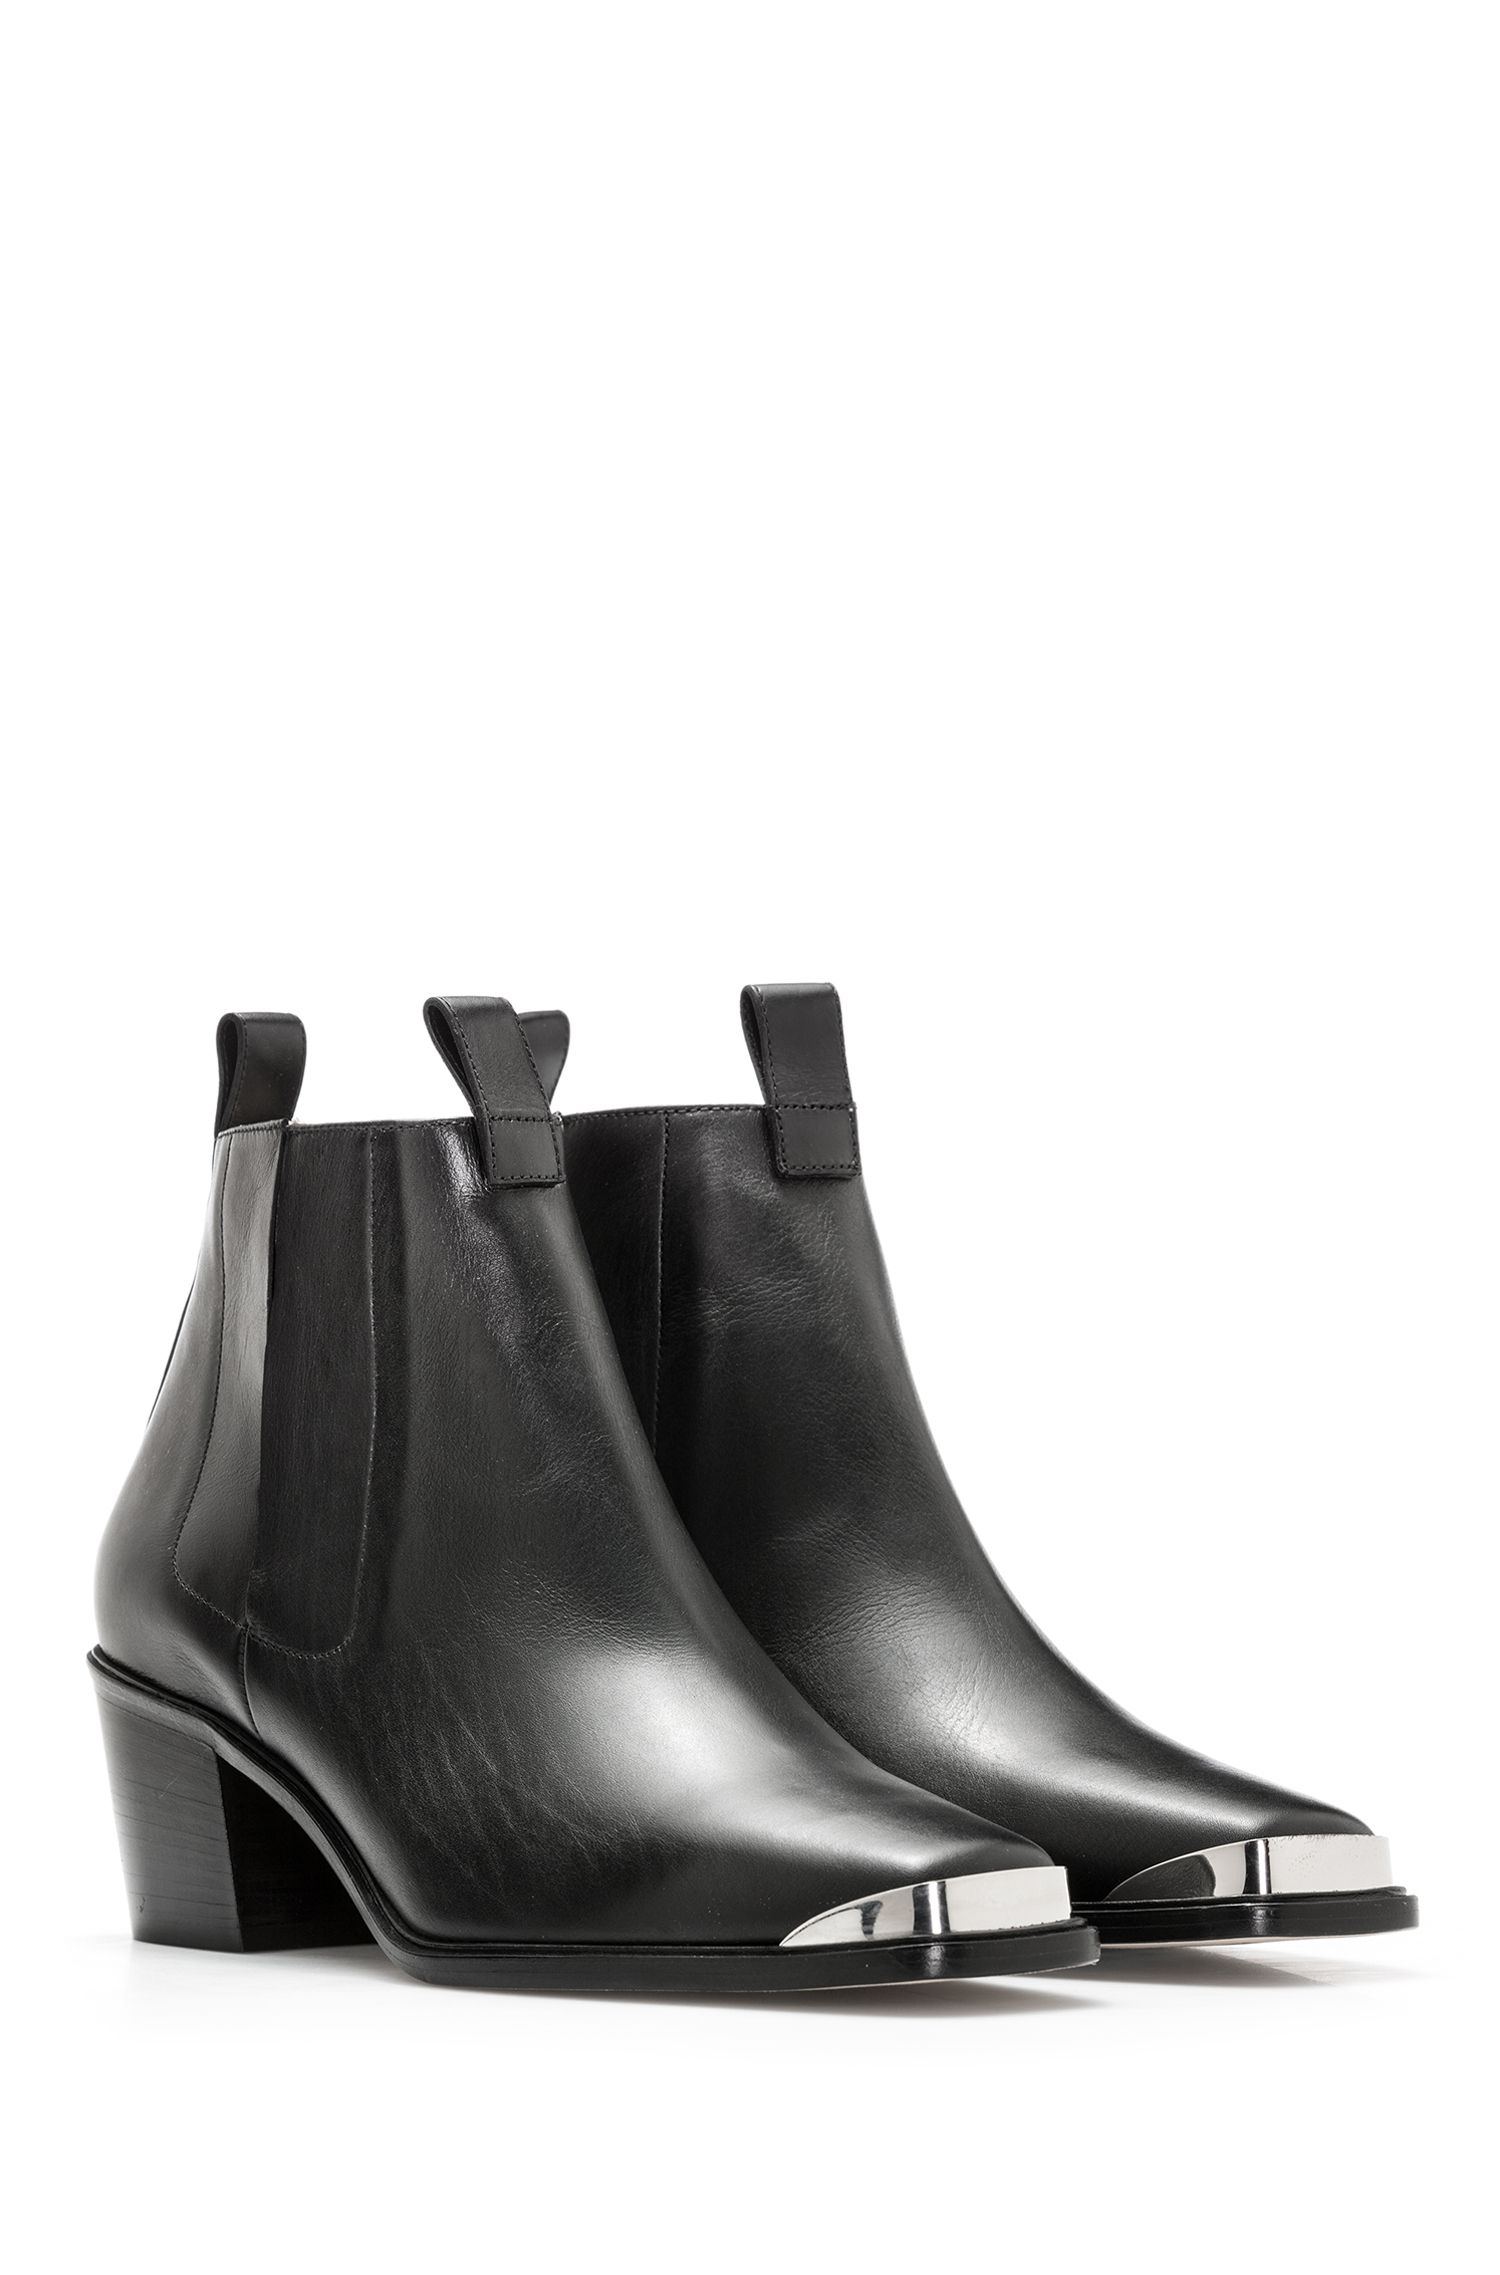 Italian calf-leather Chelsea boots with polished silver trim, Black